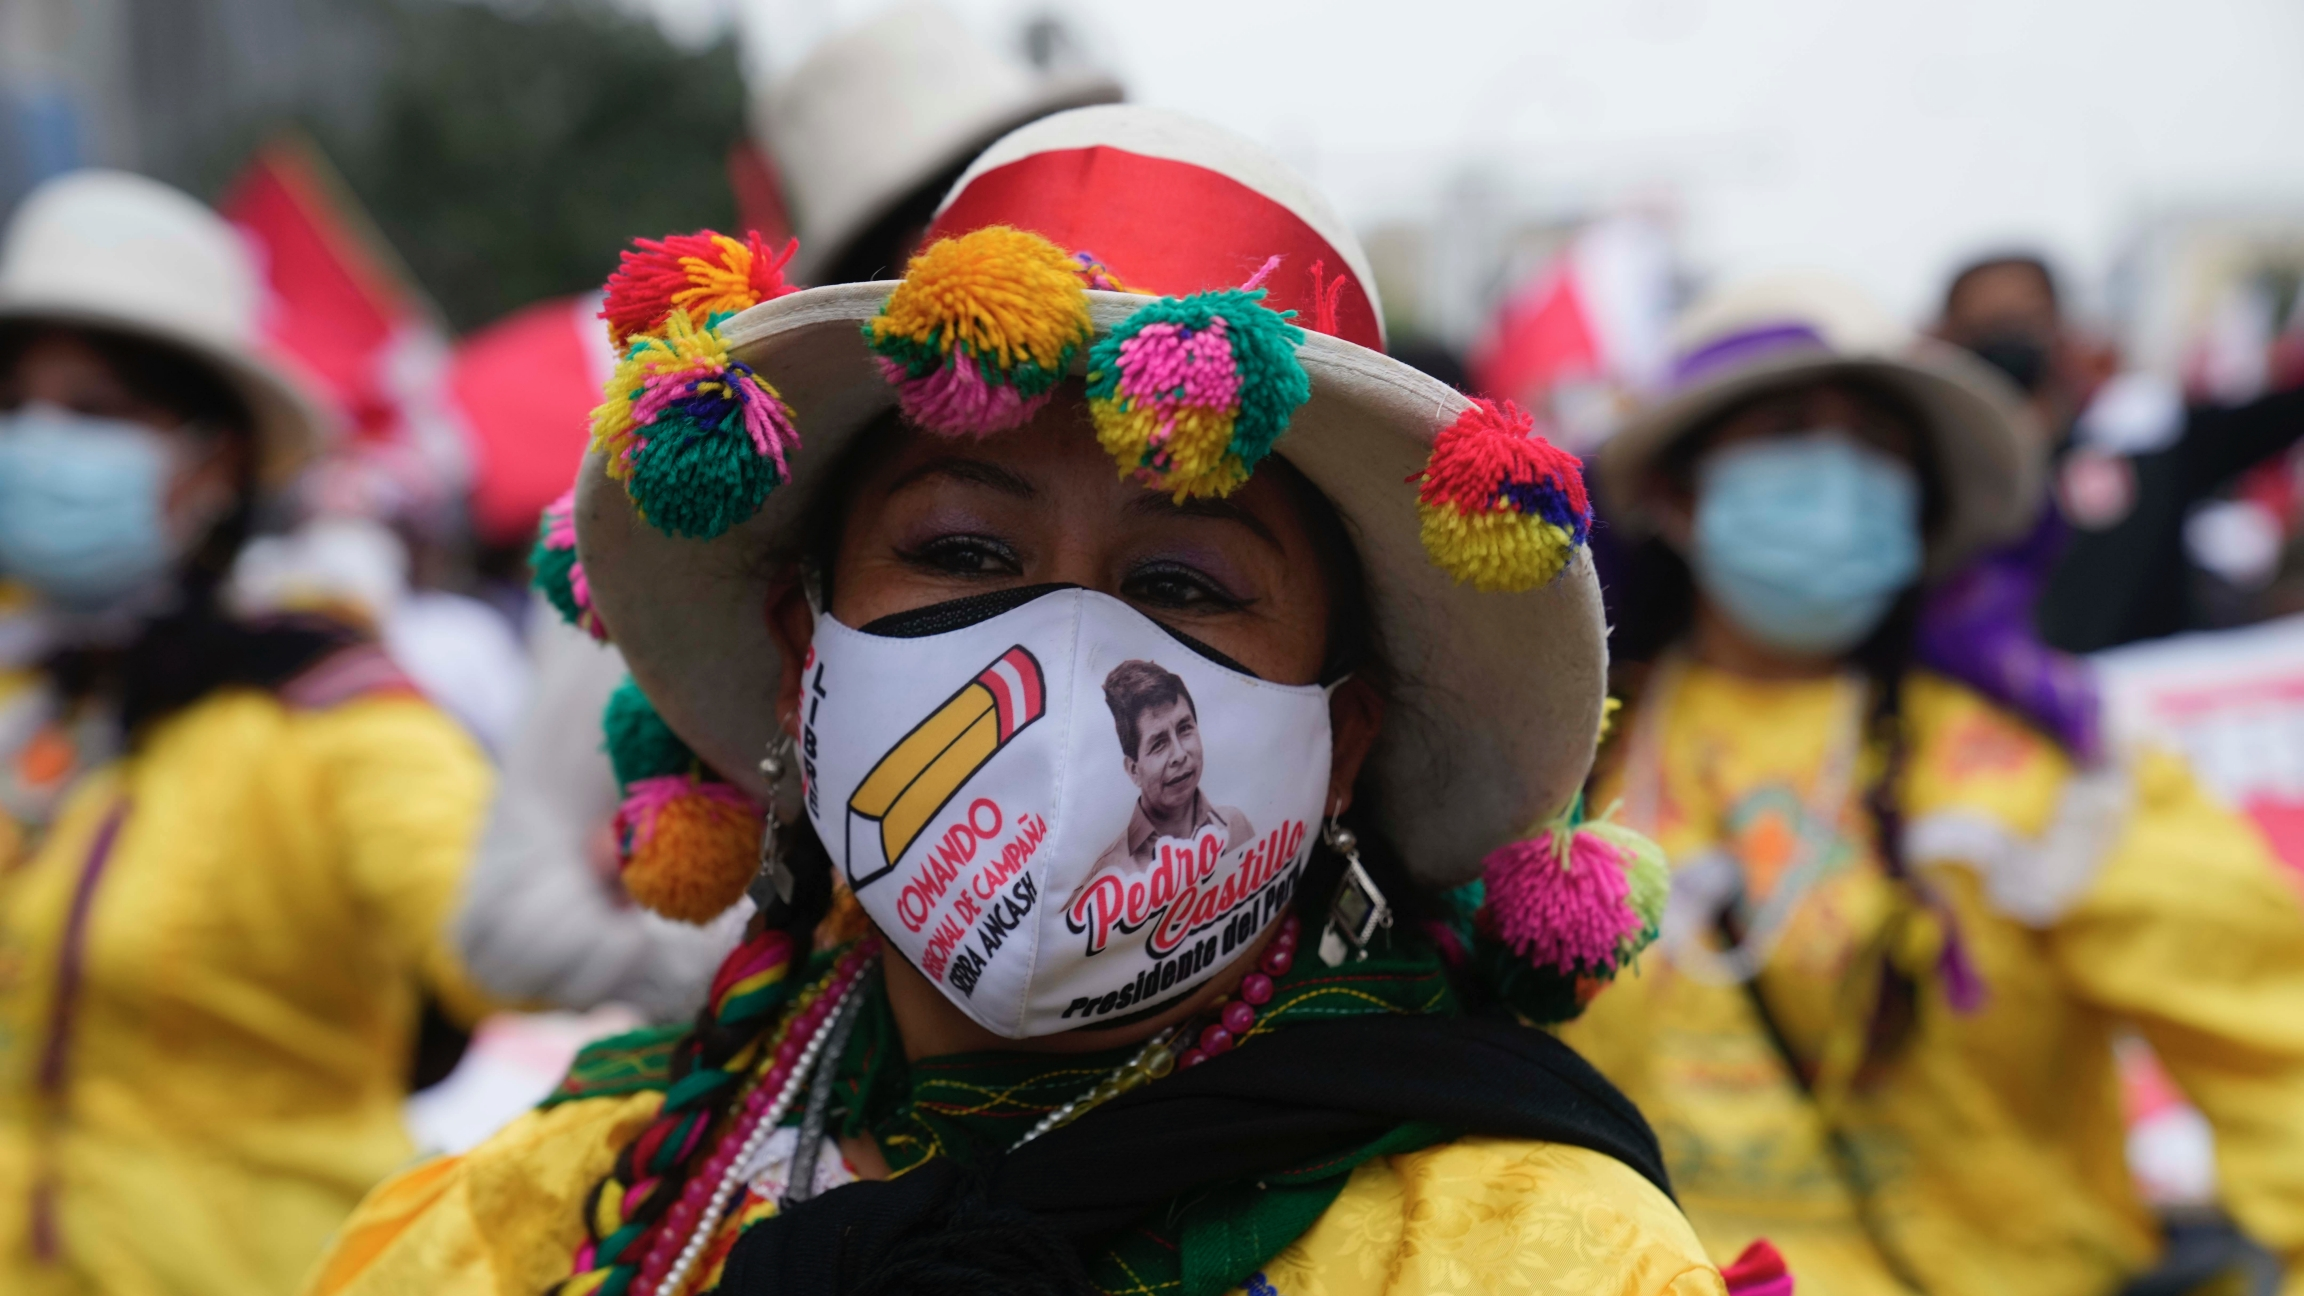 People march in support of presidential candidate Pedro Castillo weeks after the presidential runoff election, in Lima, Peru, June 26, 2021. With all the votes tallied from the June 6th presidential runoff, Castillo is ahead of his rival candidate Keiko F